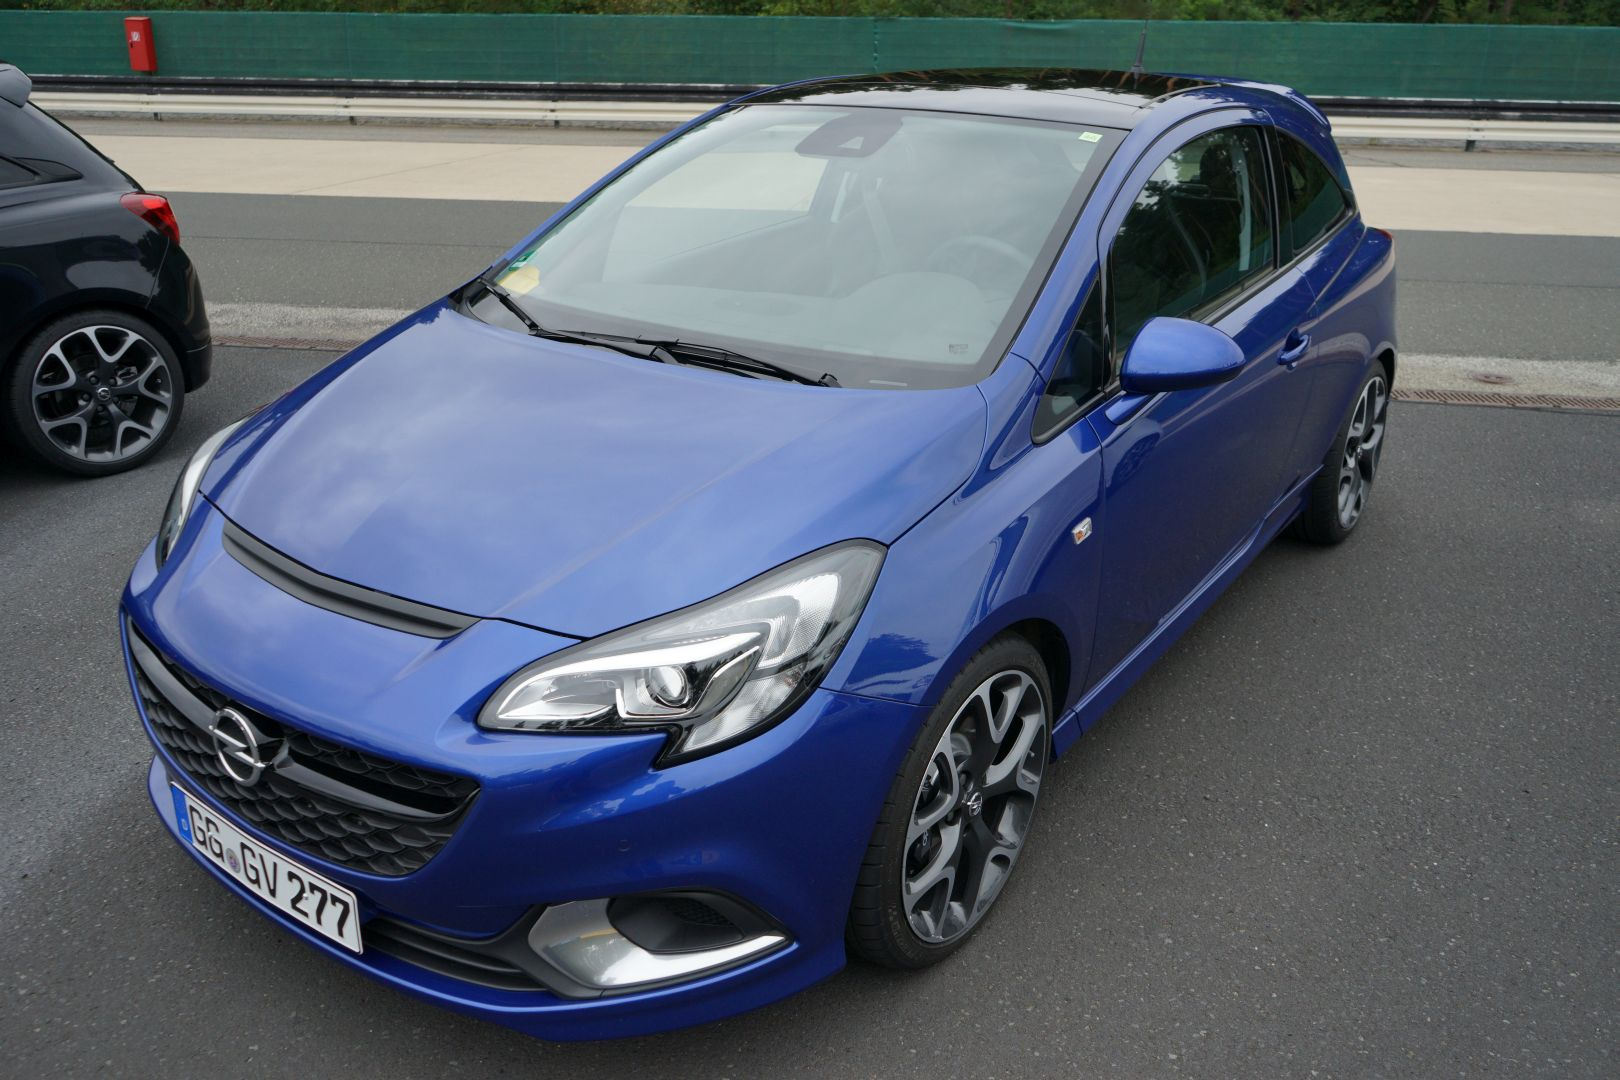 opel corsa e opc blau front 2015 ubi testet. Black Bedroom Furniture Sets. Home Design Ideas